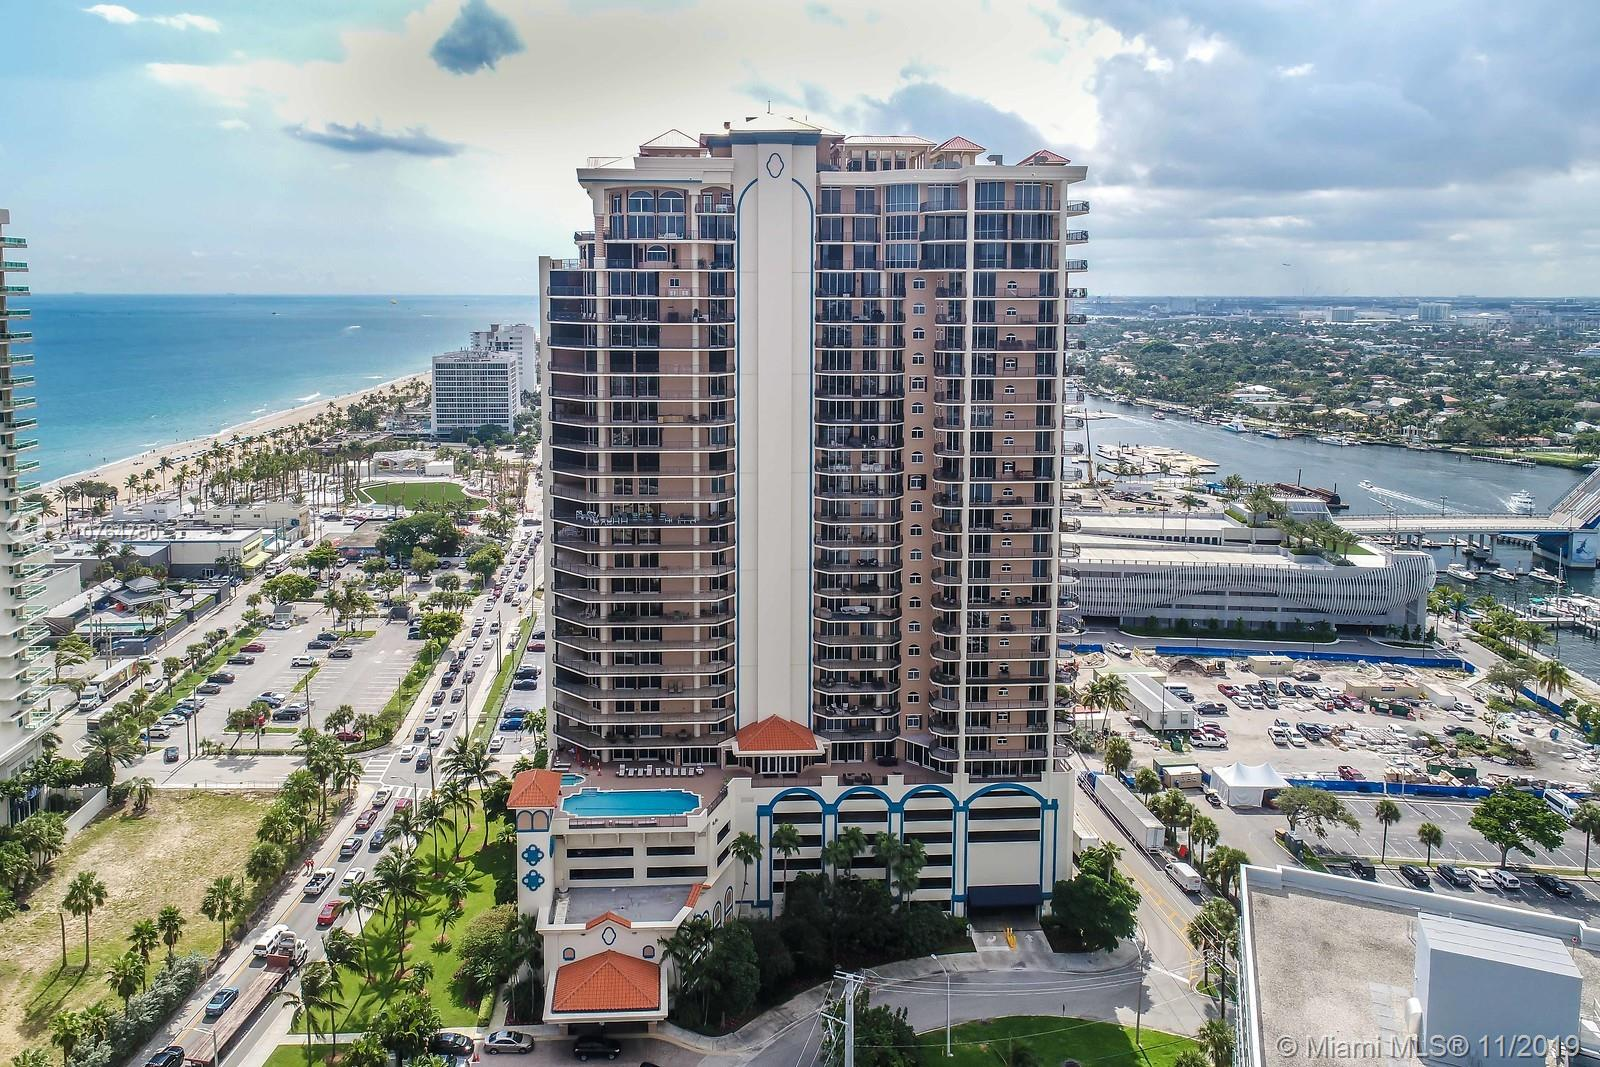 Luxury high-rise condominium located in the the heart of the Fort Lauderdale entertainment district. Full service resort like building features spacious units with large terraces, quality finishes and views of the ocean or intracoastal waterway and downtown. Valet parking, private elevators, all amenities and dog friendly. Marina is adjacent to building for easy boat storage and water taxi stop is across the street to take you to downtown, Las Olas Blvd or north Fort Lauderdale beach.